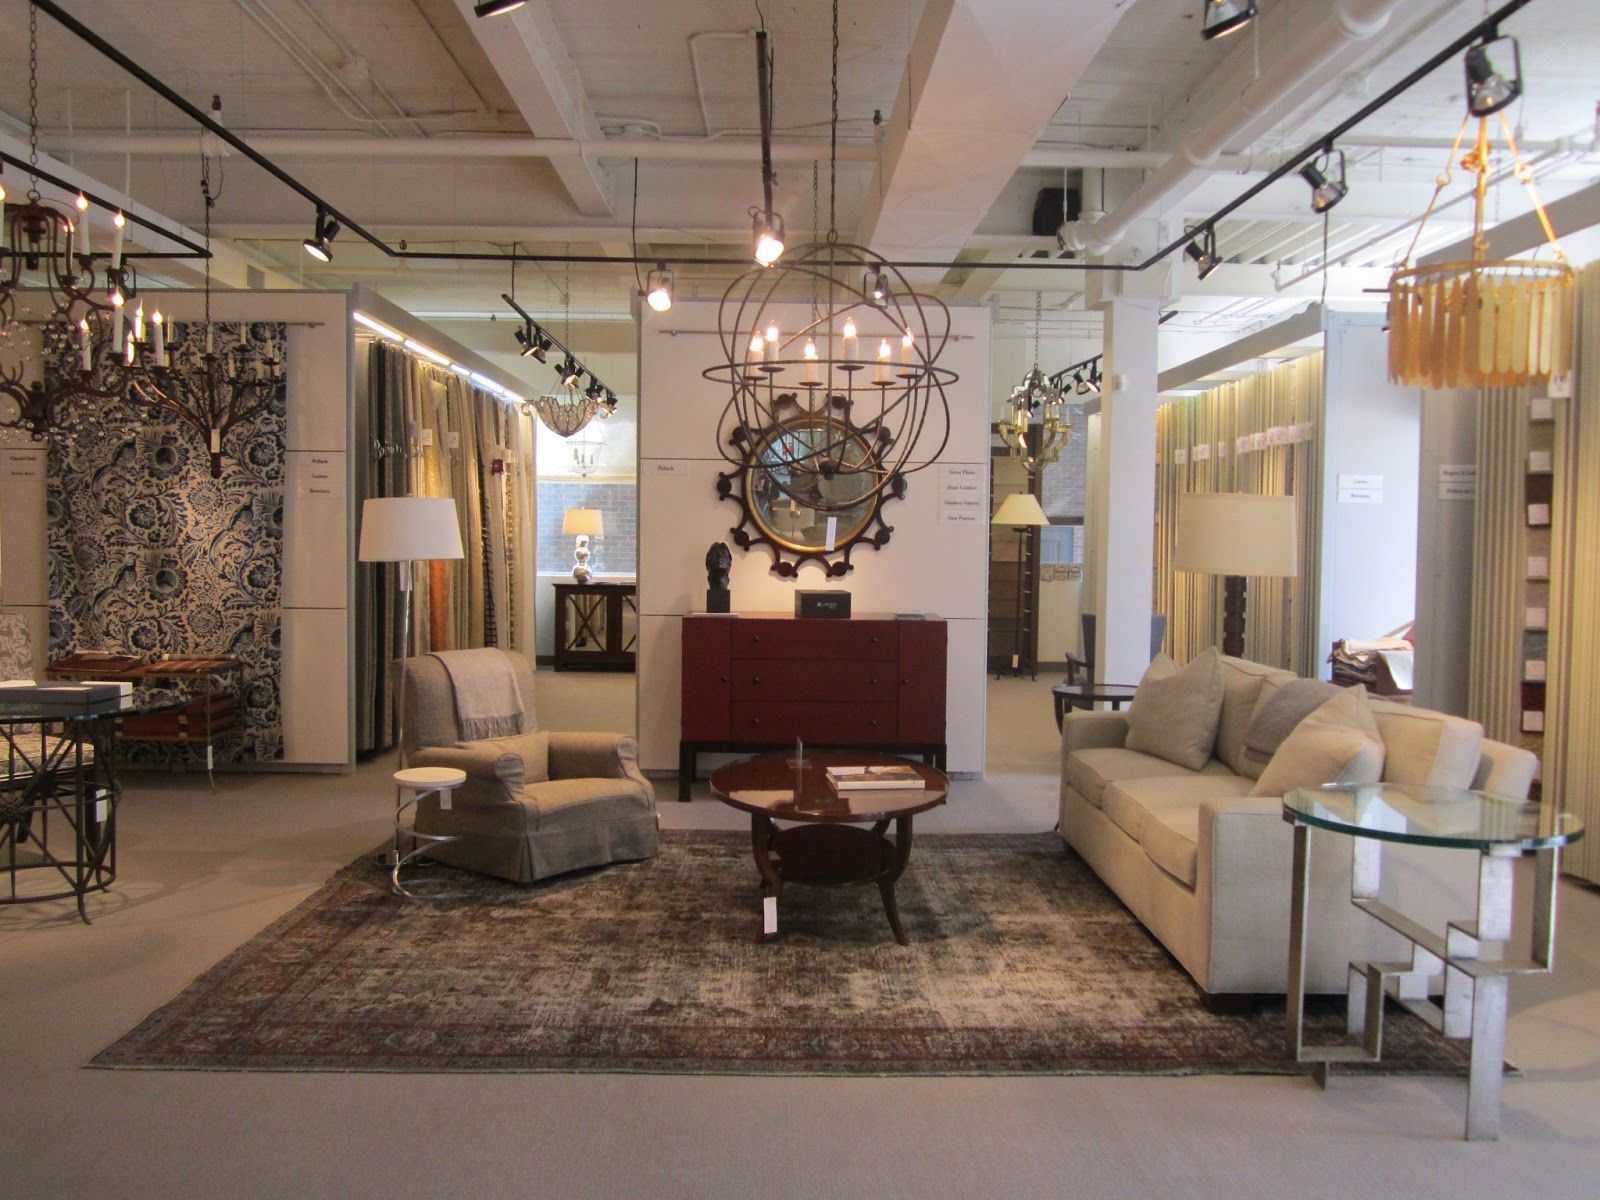 delicious decor ~: My visit to Designers Walk in Toronto